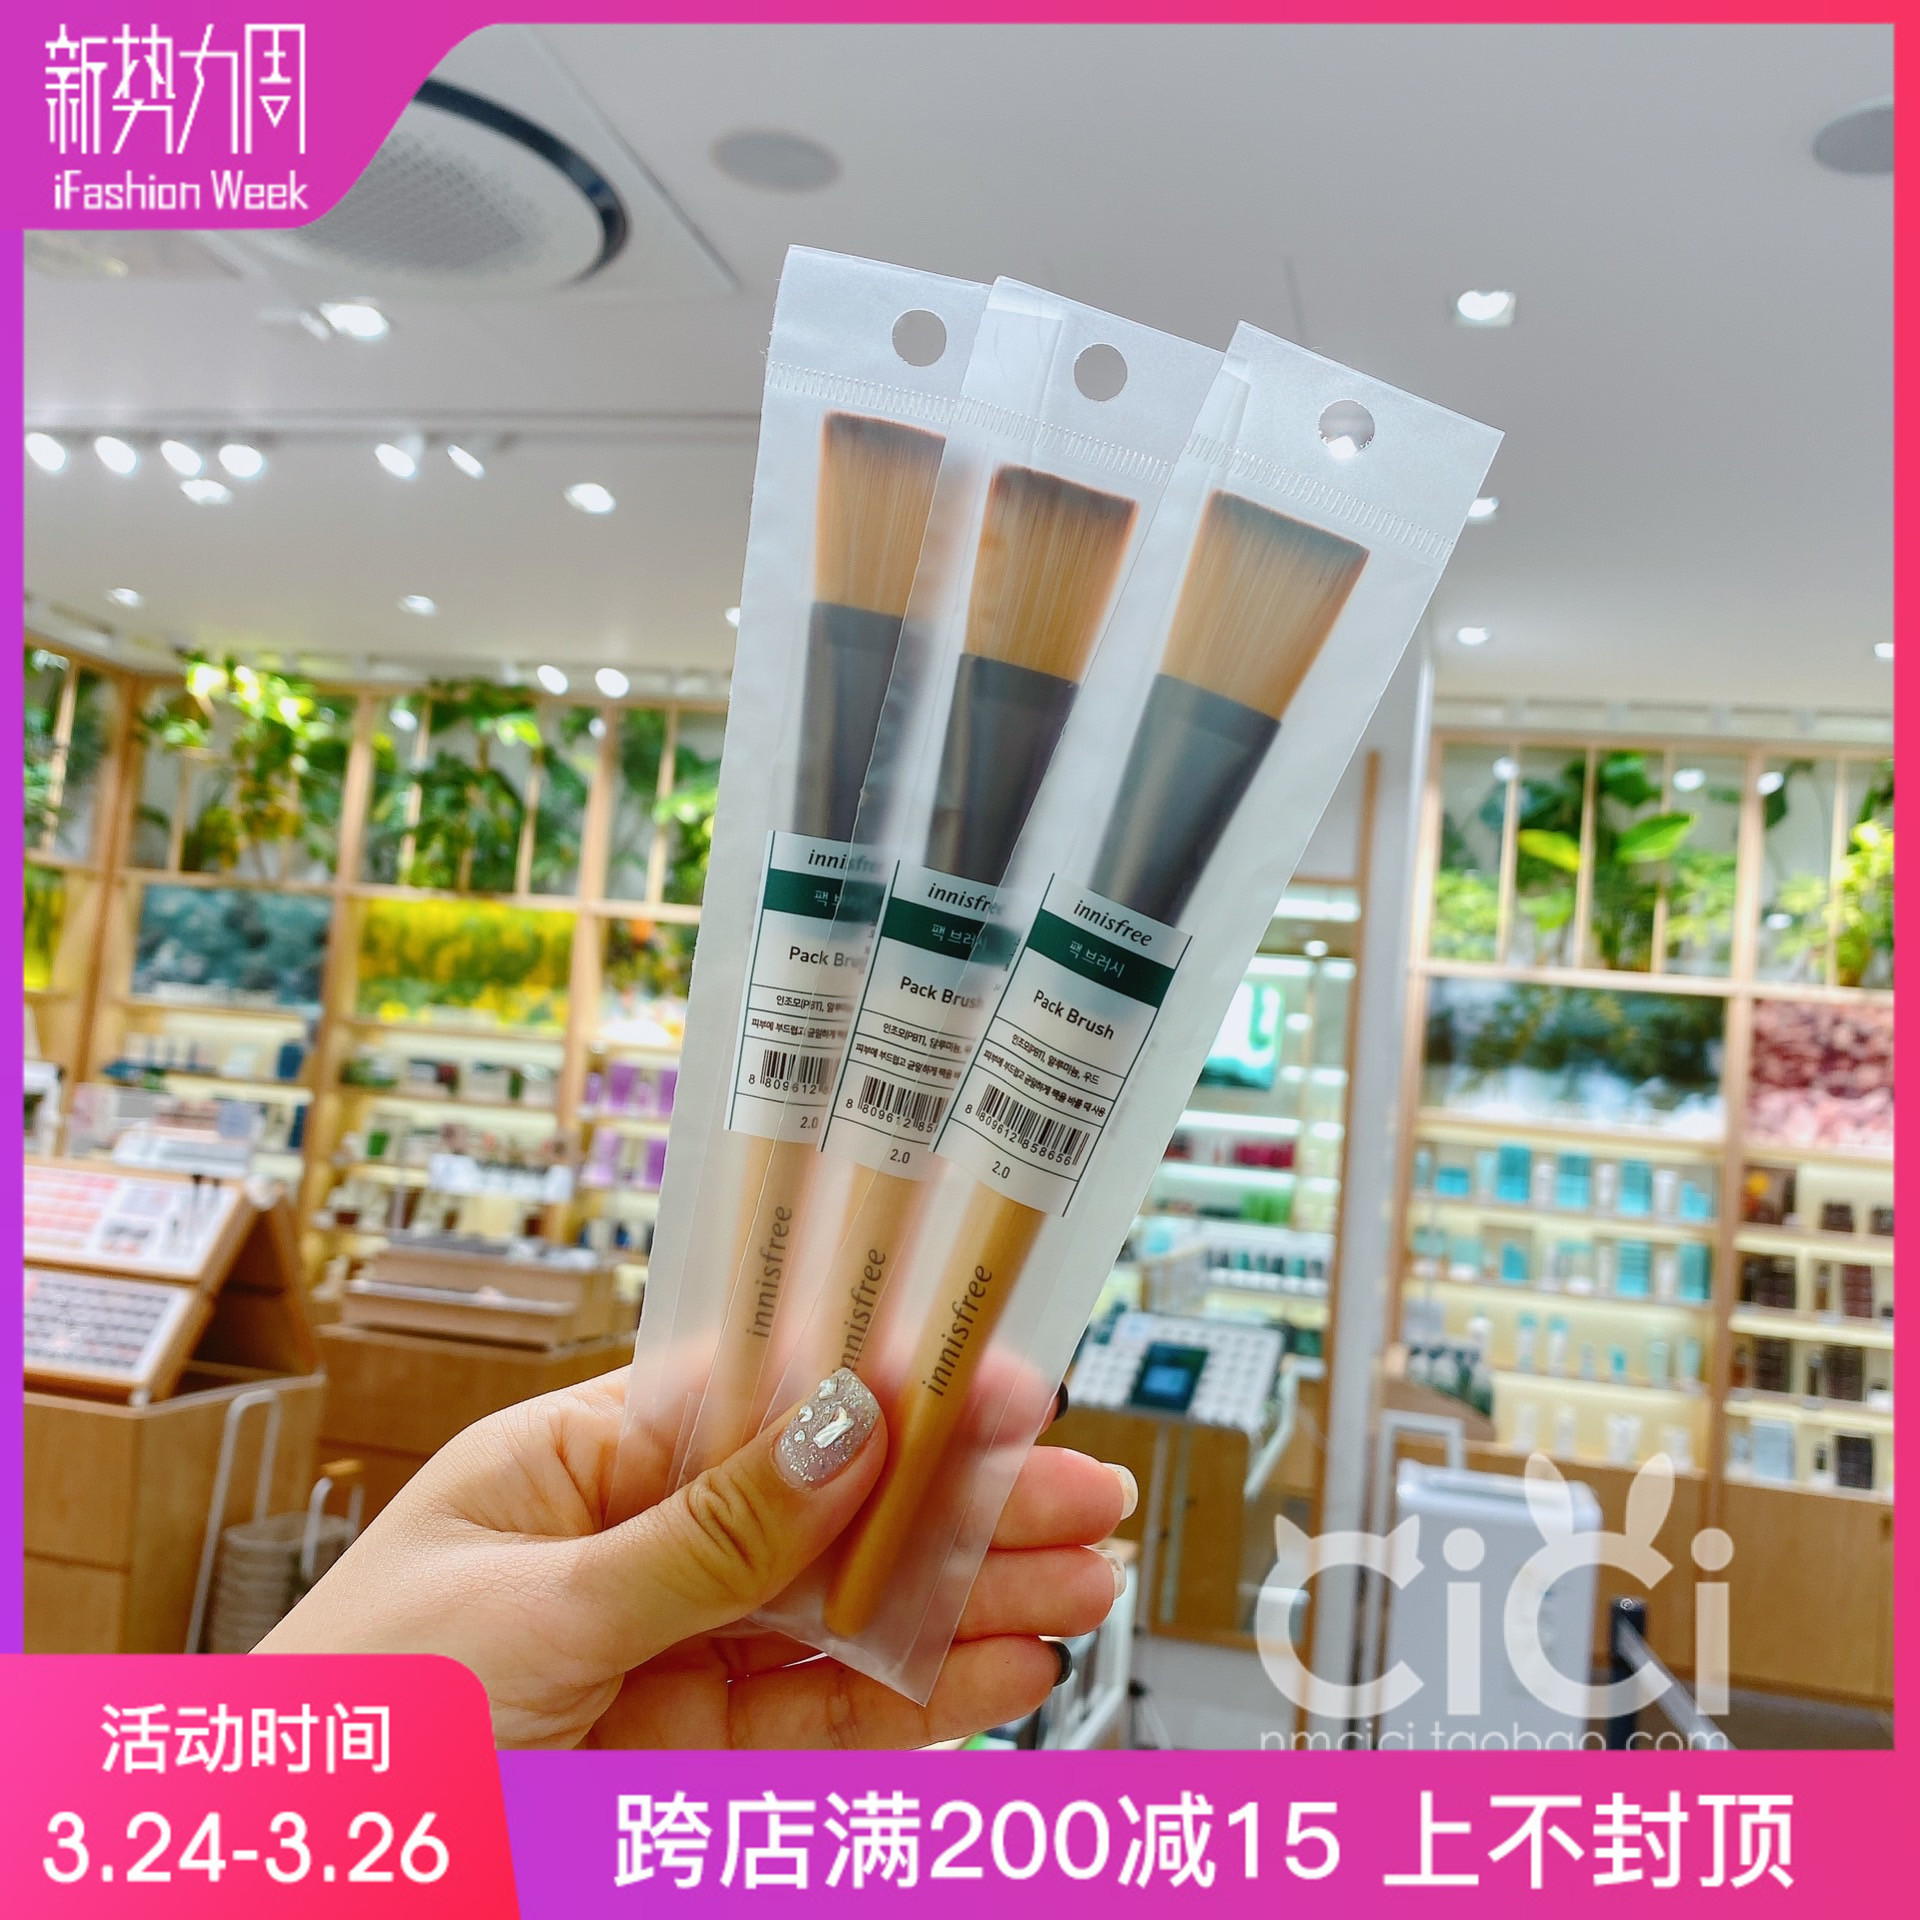 [CiCi] the Innisfree Korean style facial mask brush is uniform and convenient.